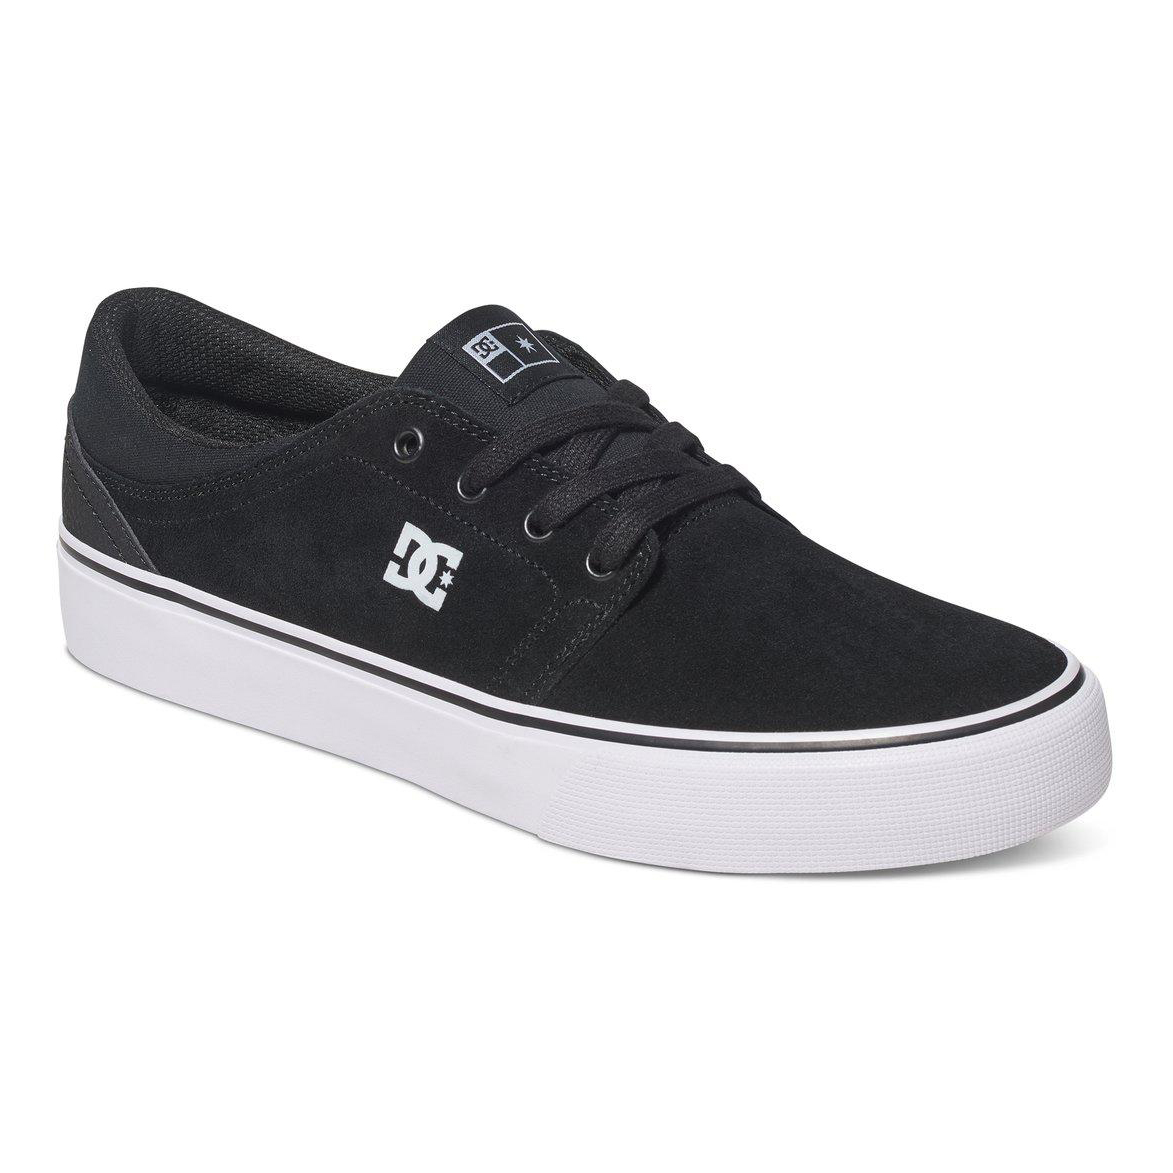 DC Trase S Mens Shoes